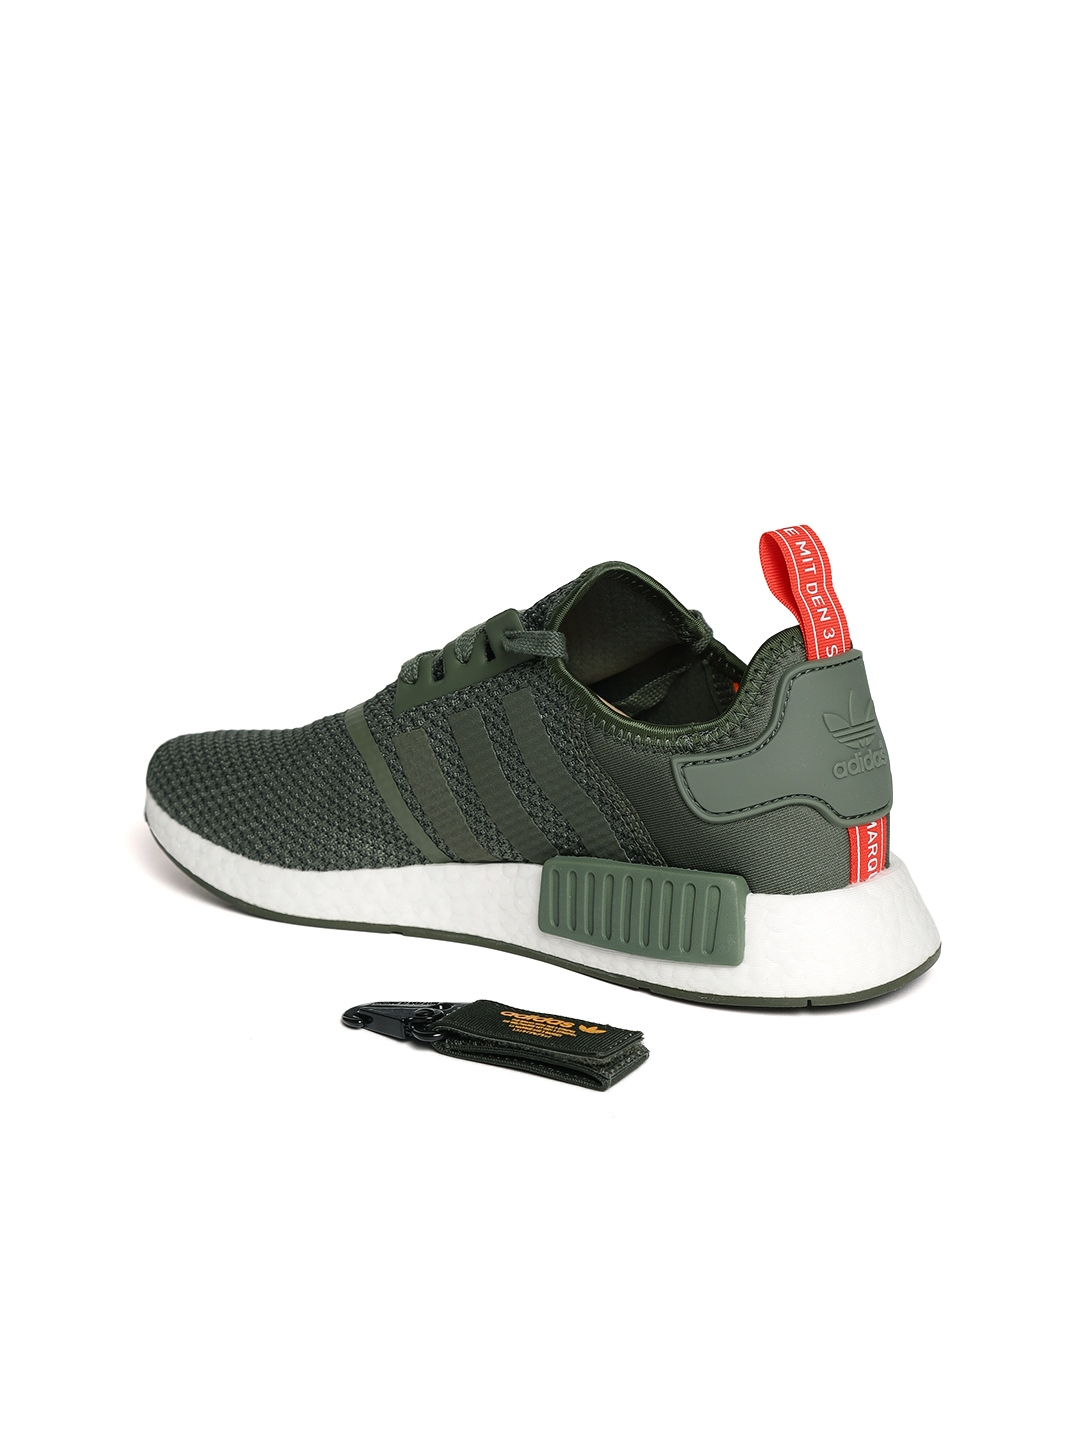 fe8f29d44 Buy ADIDAS Originals Men Olive Green NMD R1 Casual Shoes - Casual ...